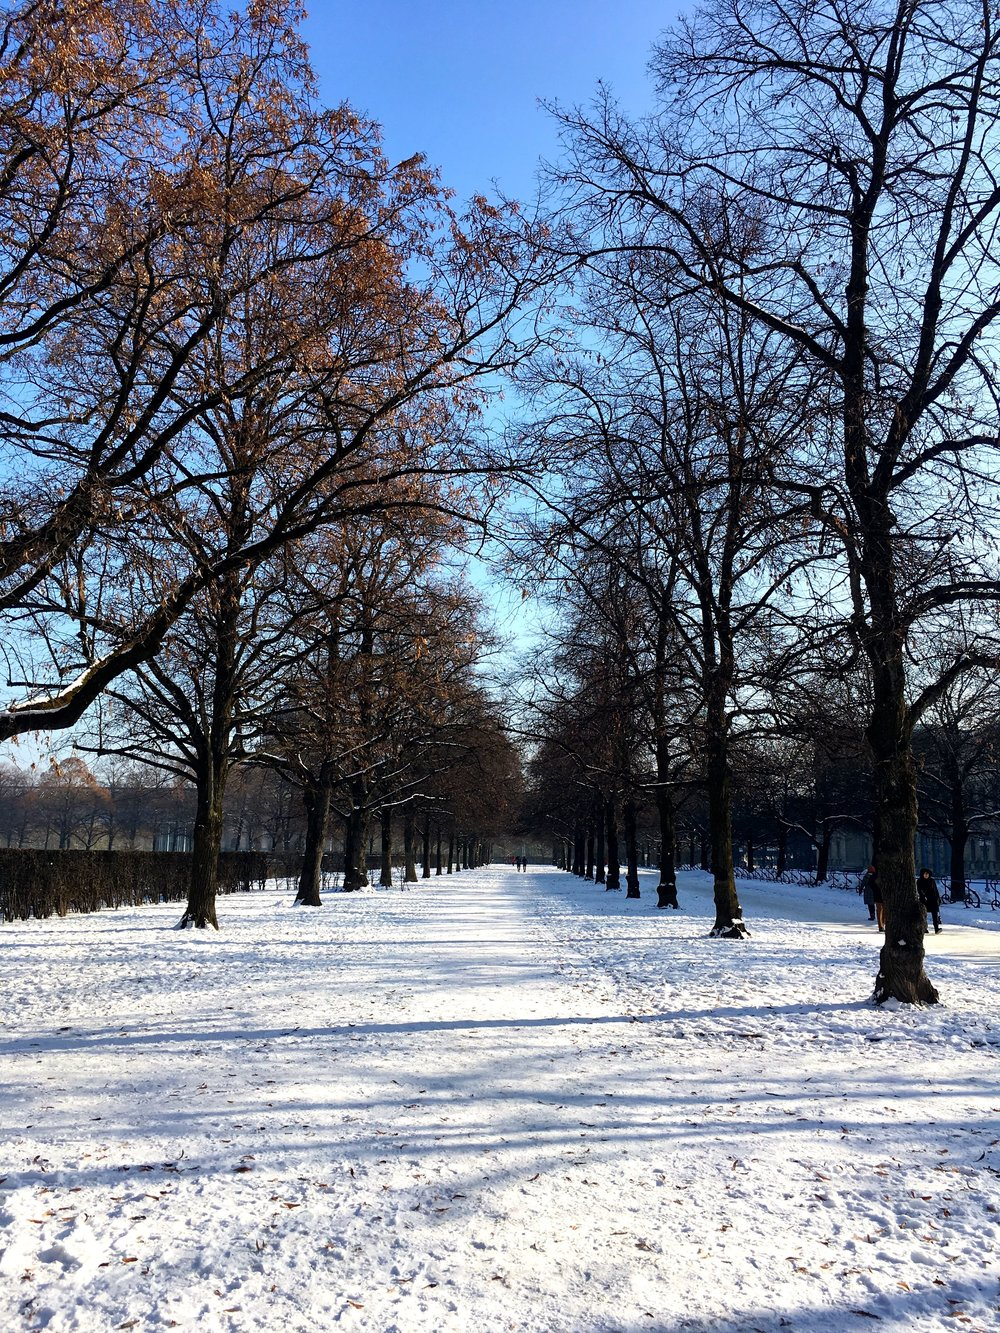 Looking down the avenue of trees in the Hofgarten